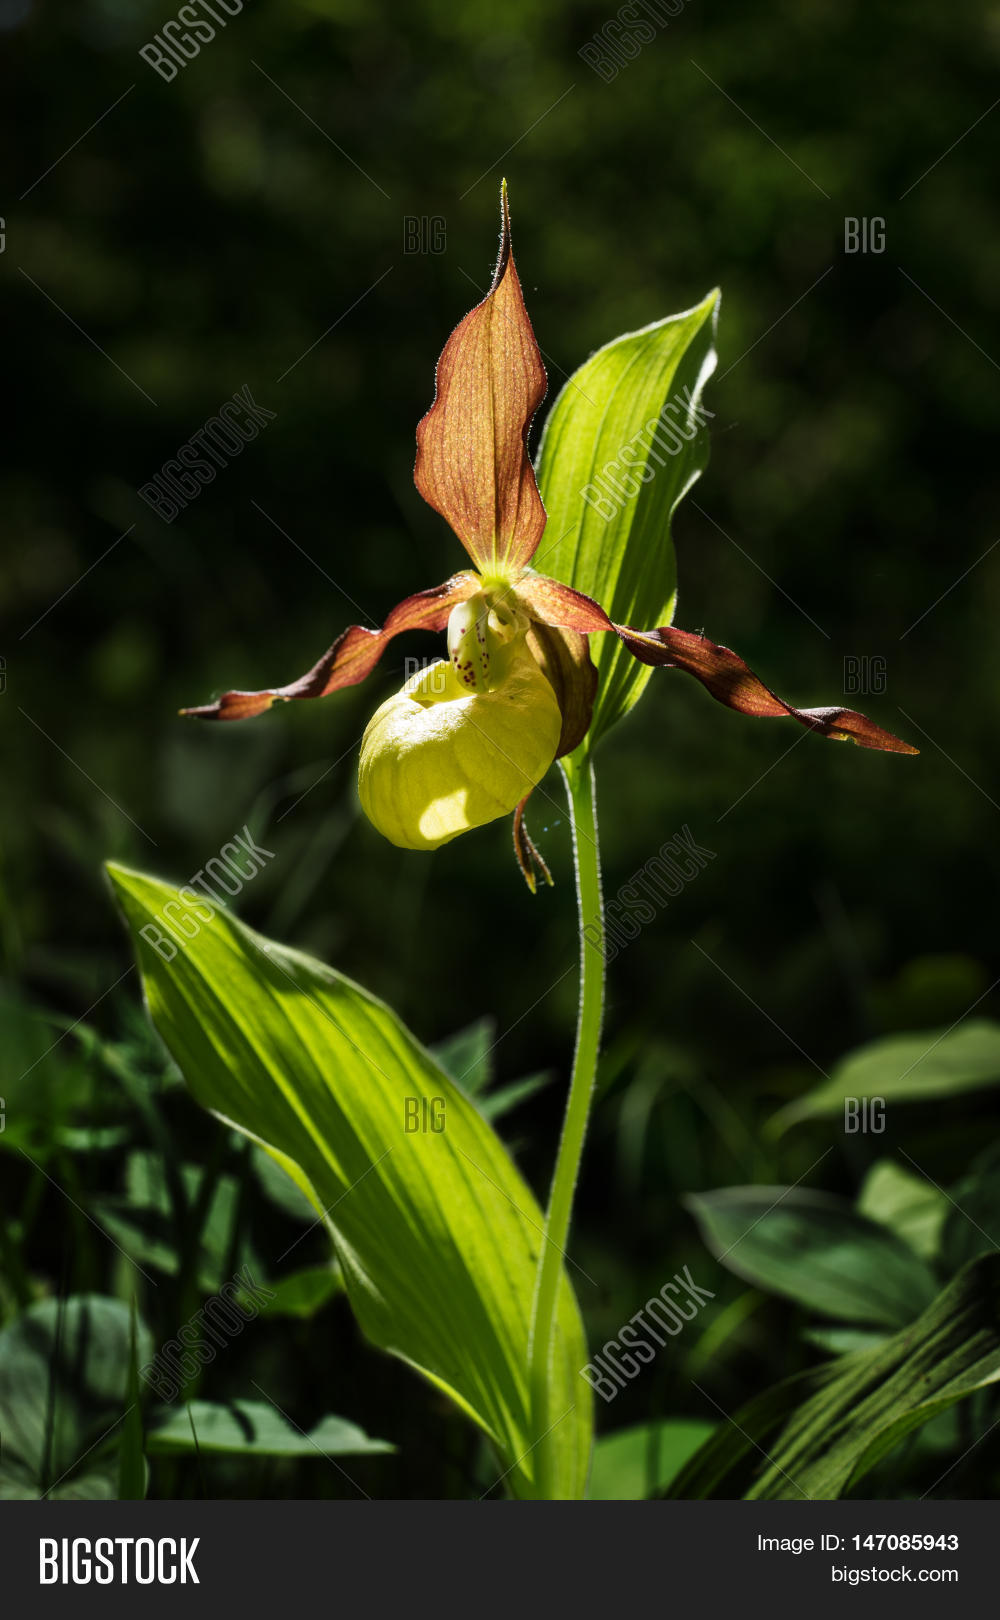 Ladys Slipper Orchid Image Photo Free Trial Bigstock